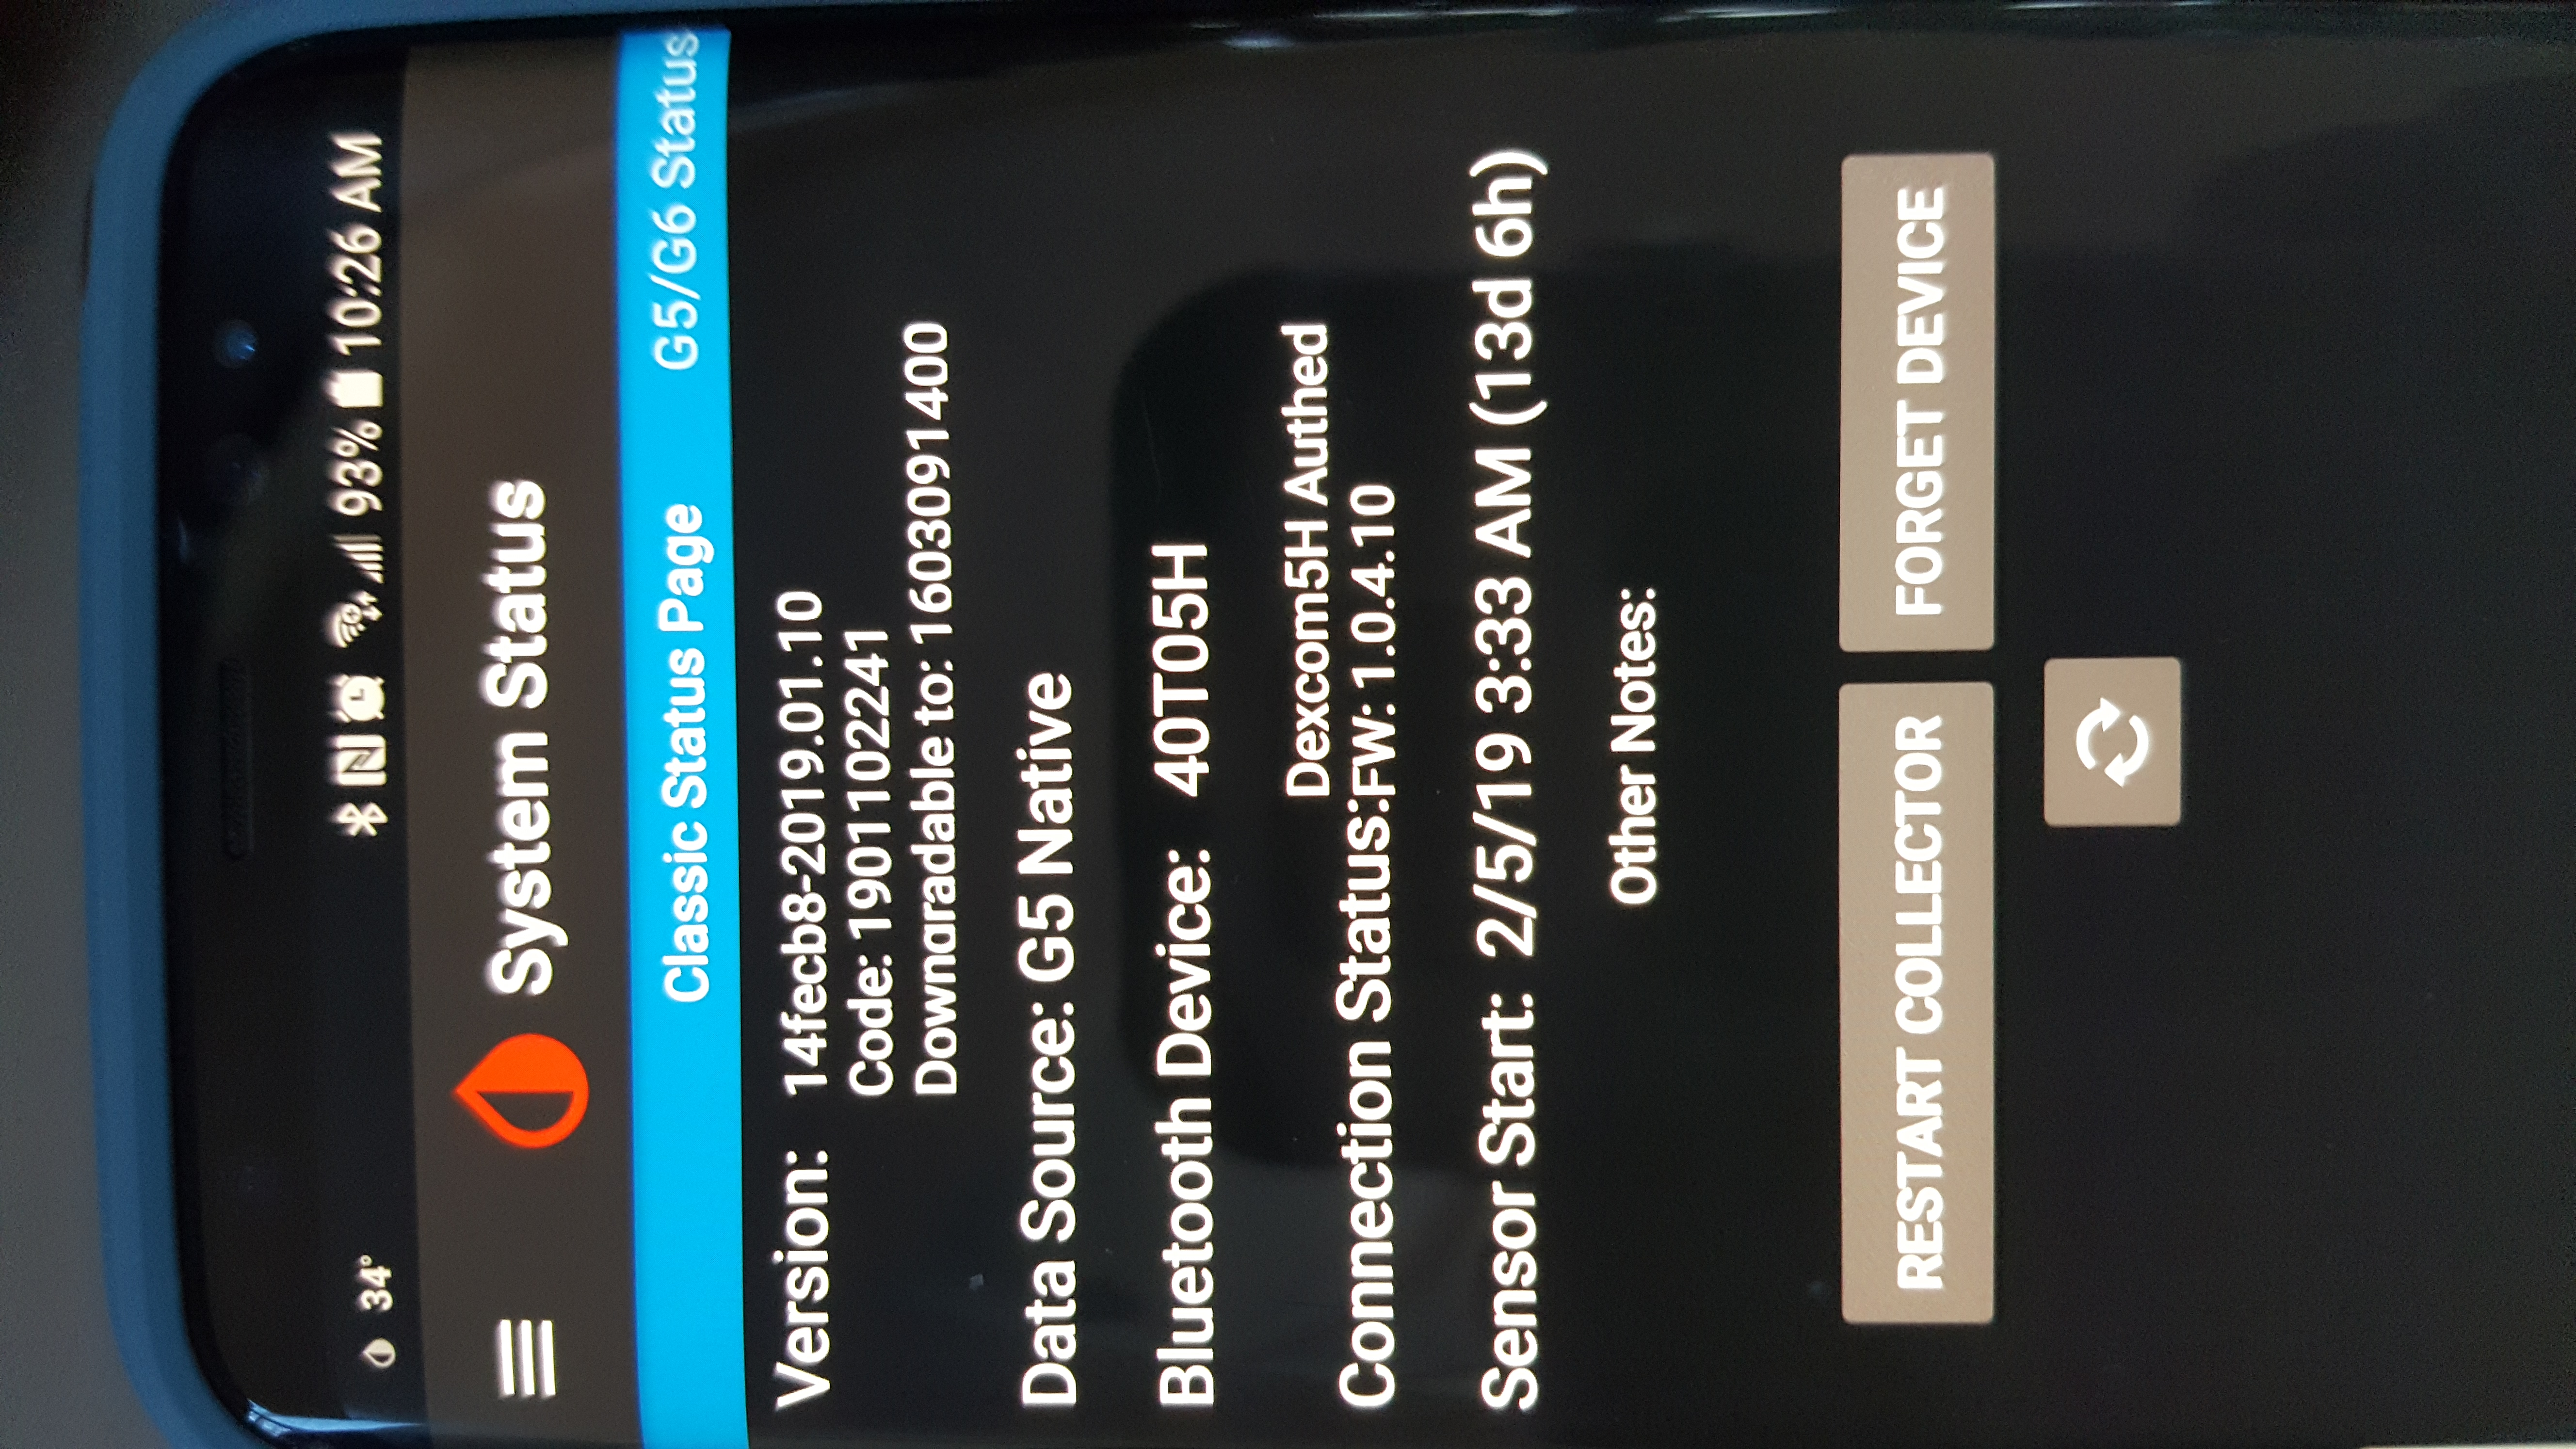 samsung s8 and sony smartwatch 3 sensor stopped, calibration